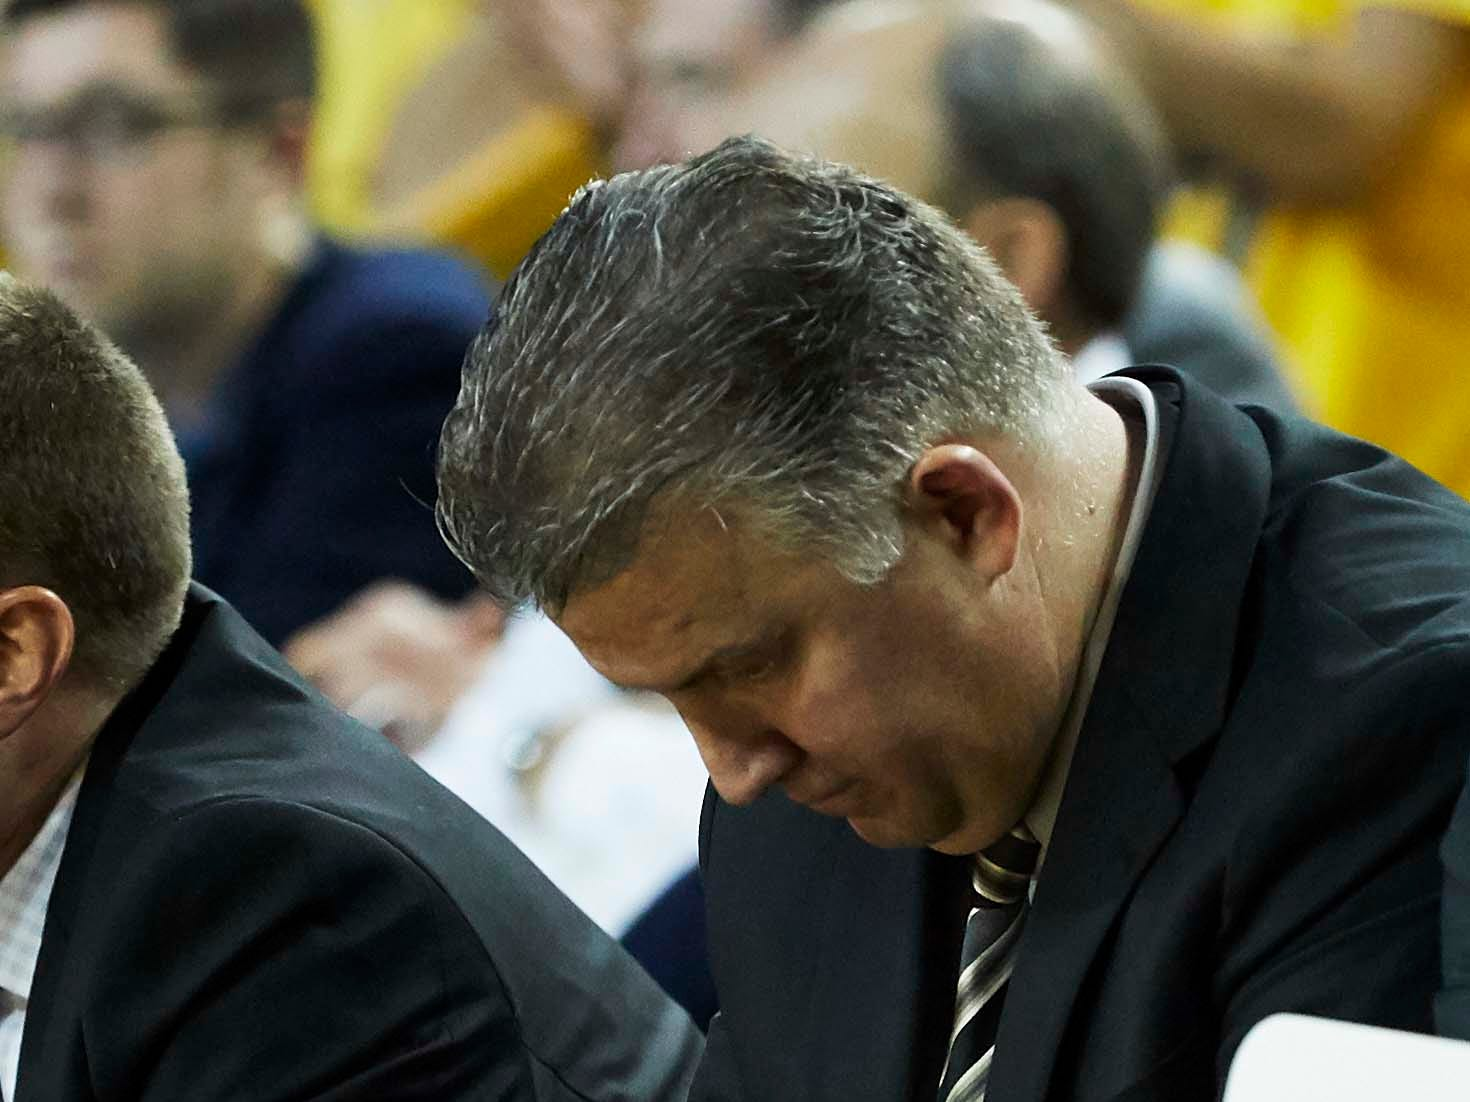 Dec 1, 2018; Ann Arbor, MI, USA; Purdue Boilermakers head coach Matt Painter sits on the bench in the second half against the Michigan Wolverines at Crisler Center. Mandatory Credit: Rick Osentoski-USA TODAY Sports